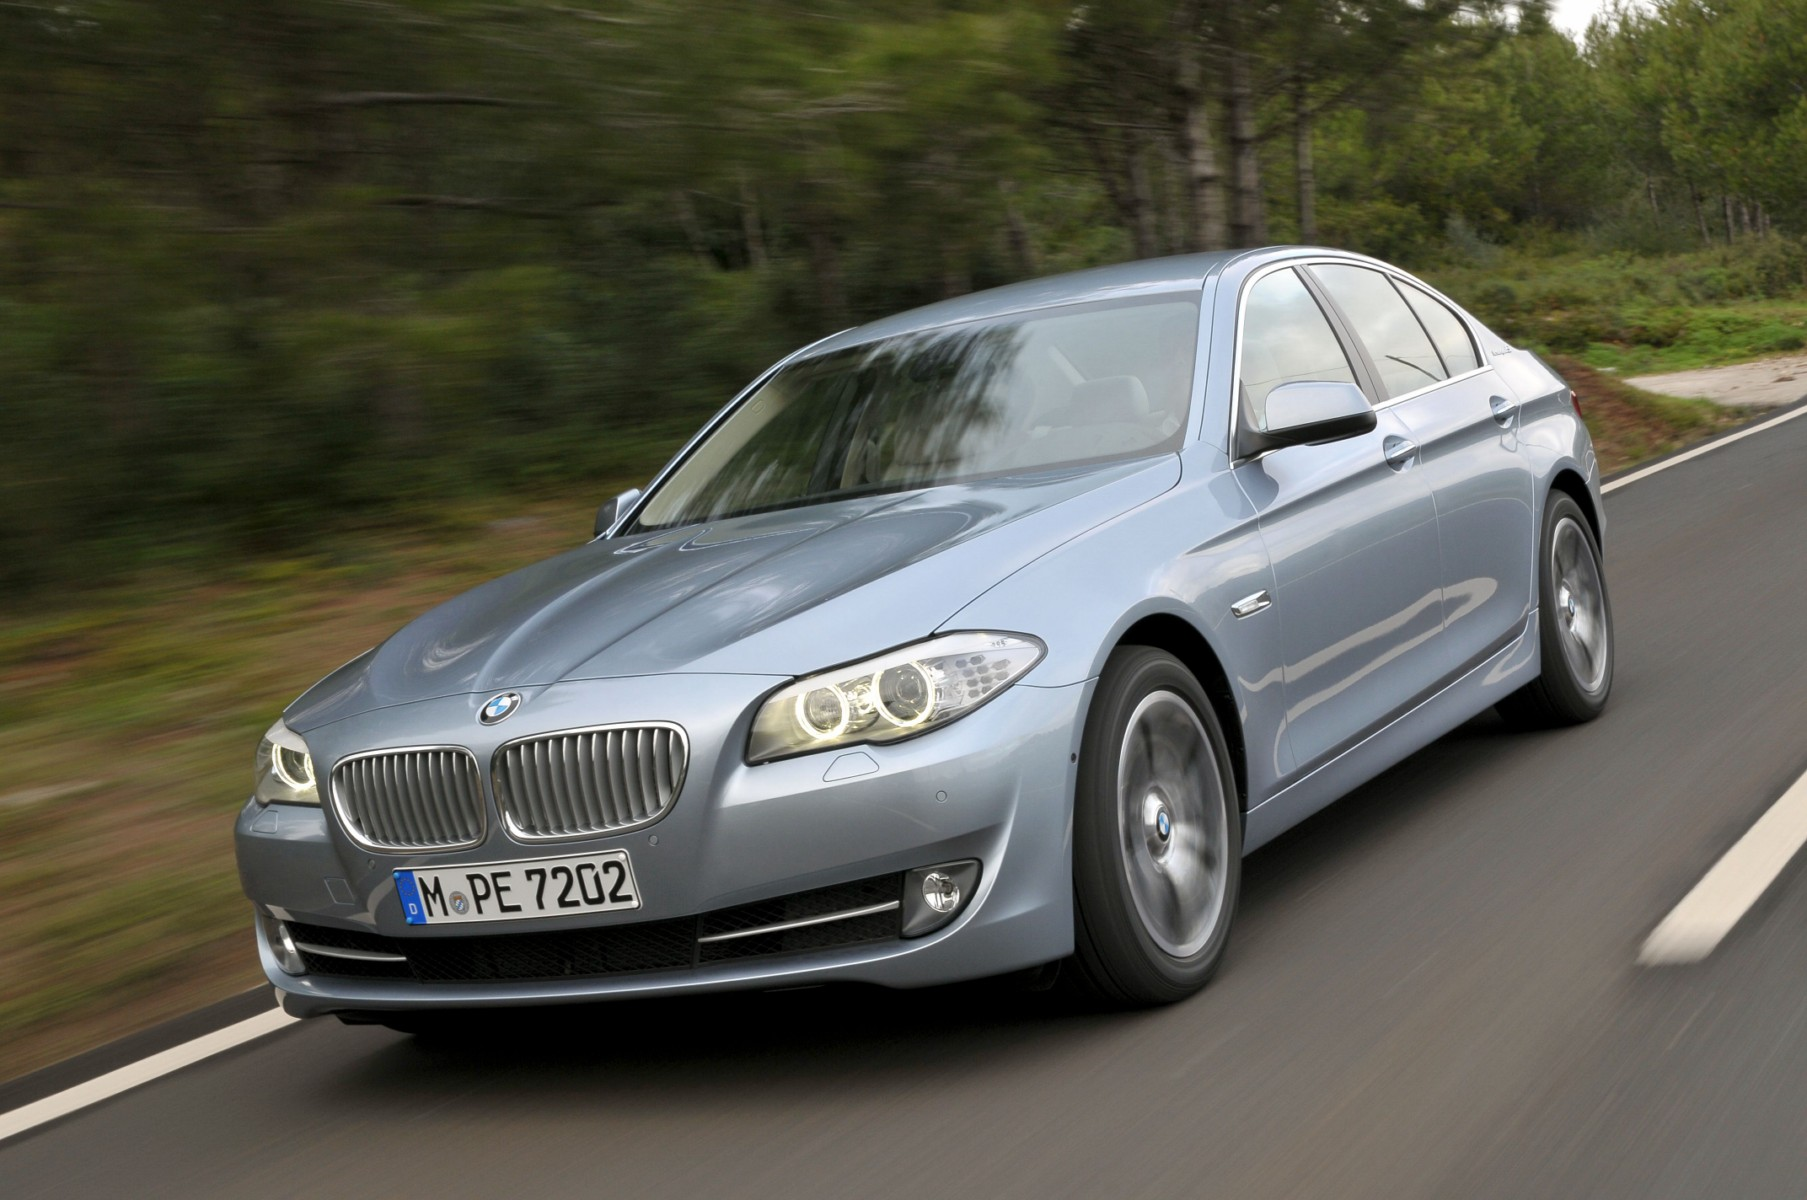 2015 Bmw Activehybrid 5 #11